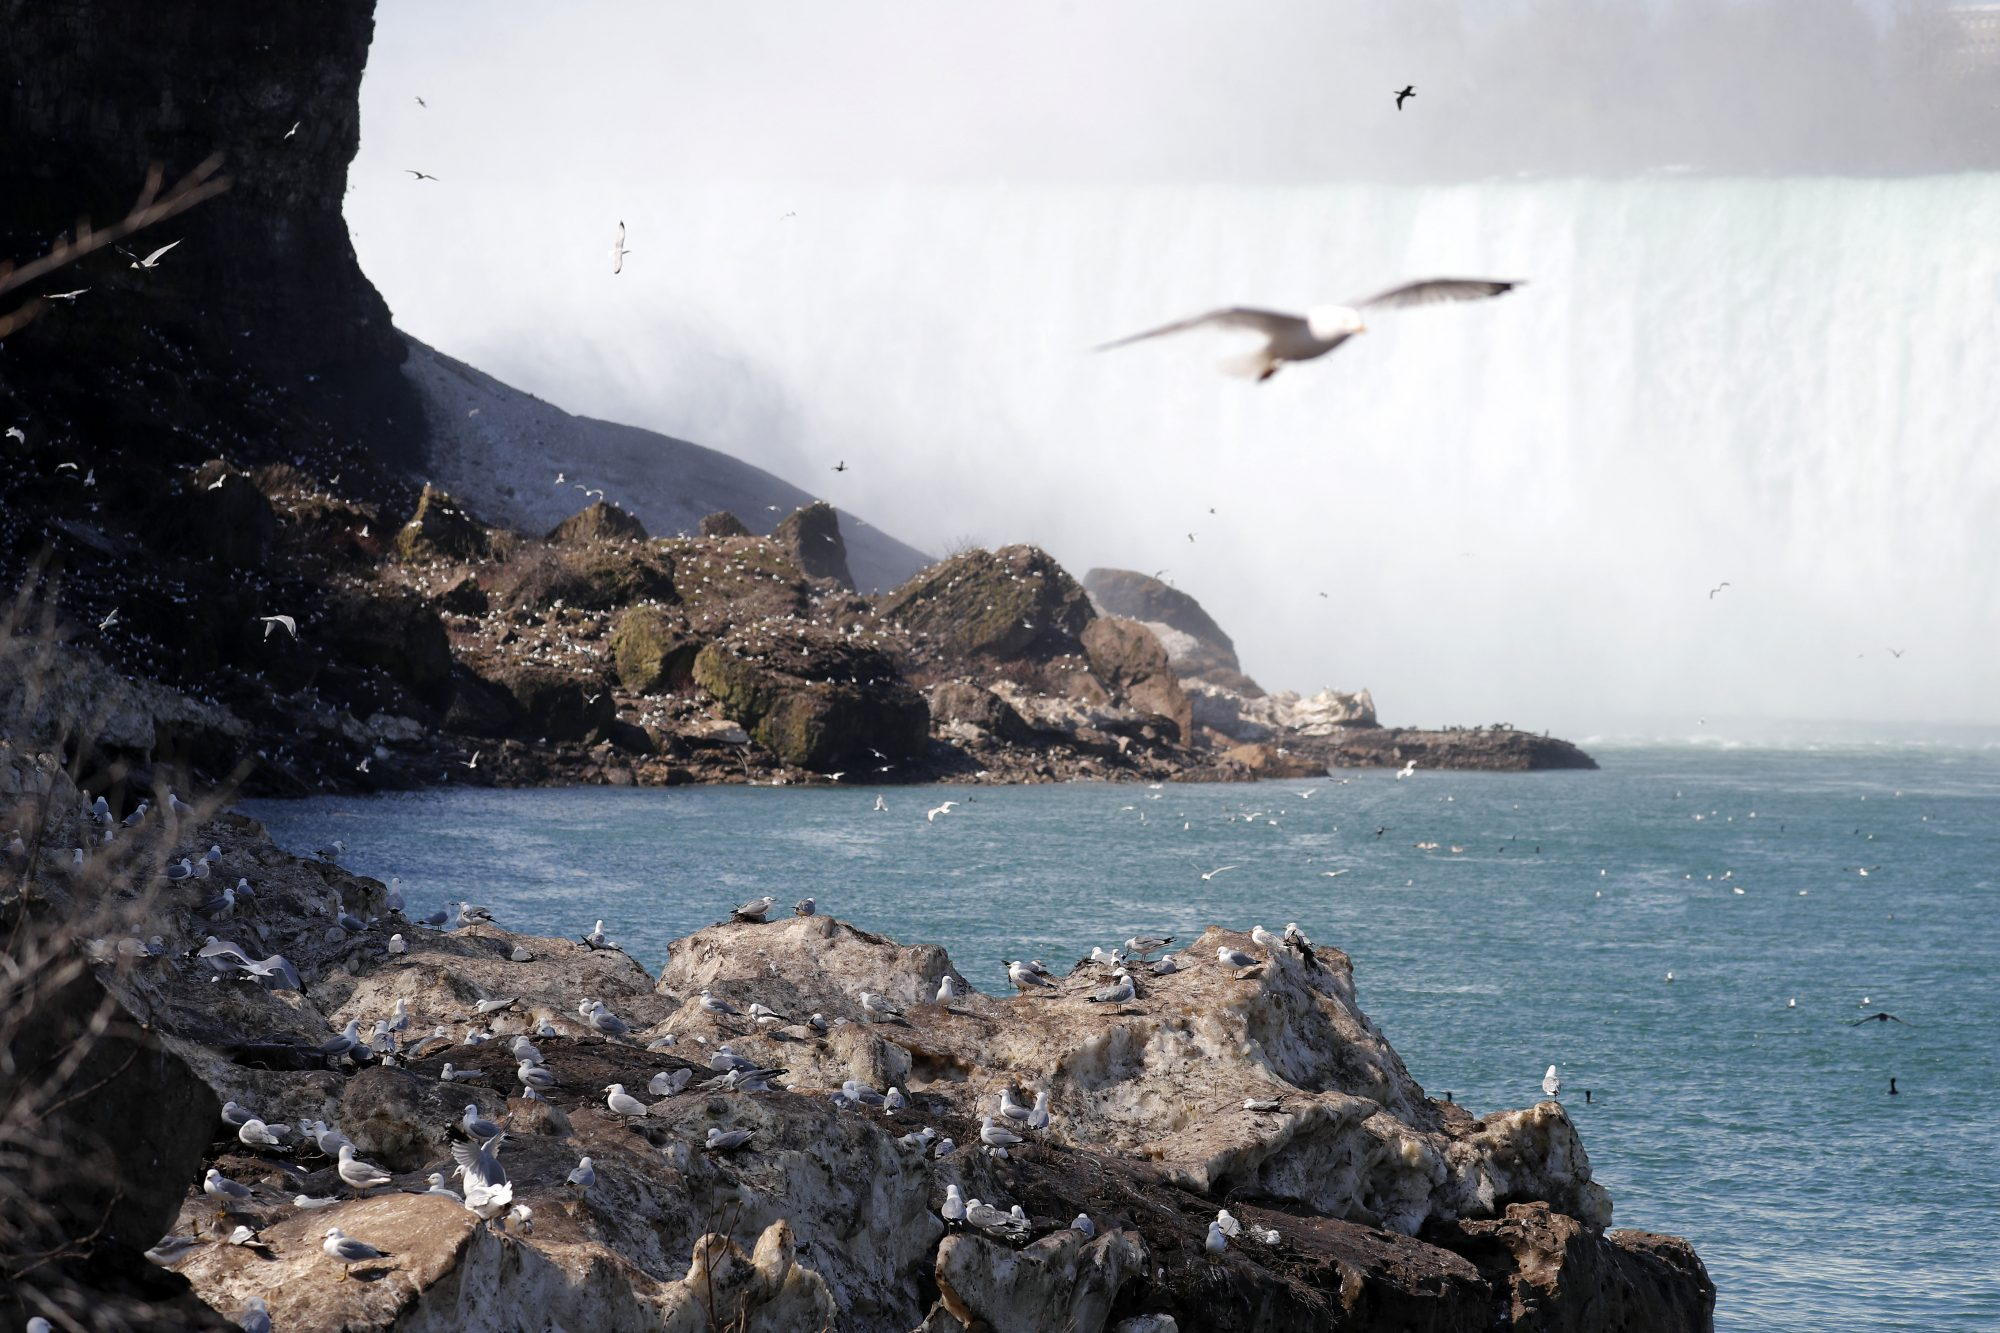 Gulls on parade: Why the skies over Niagara Falls are filled